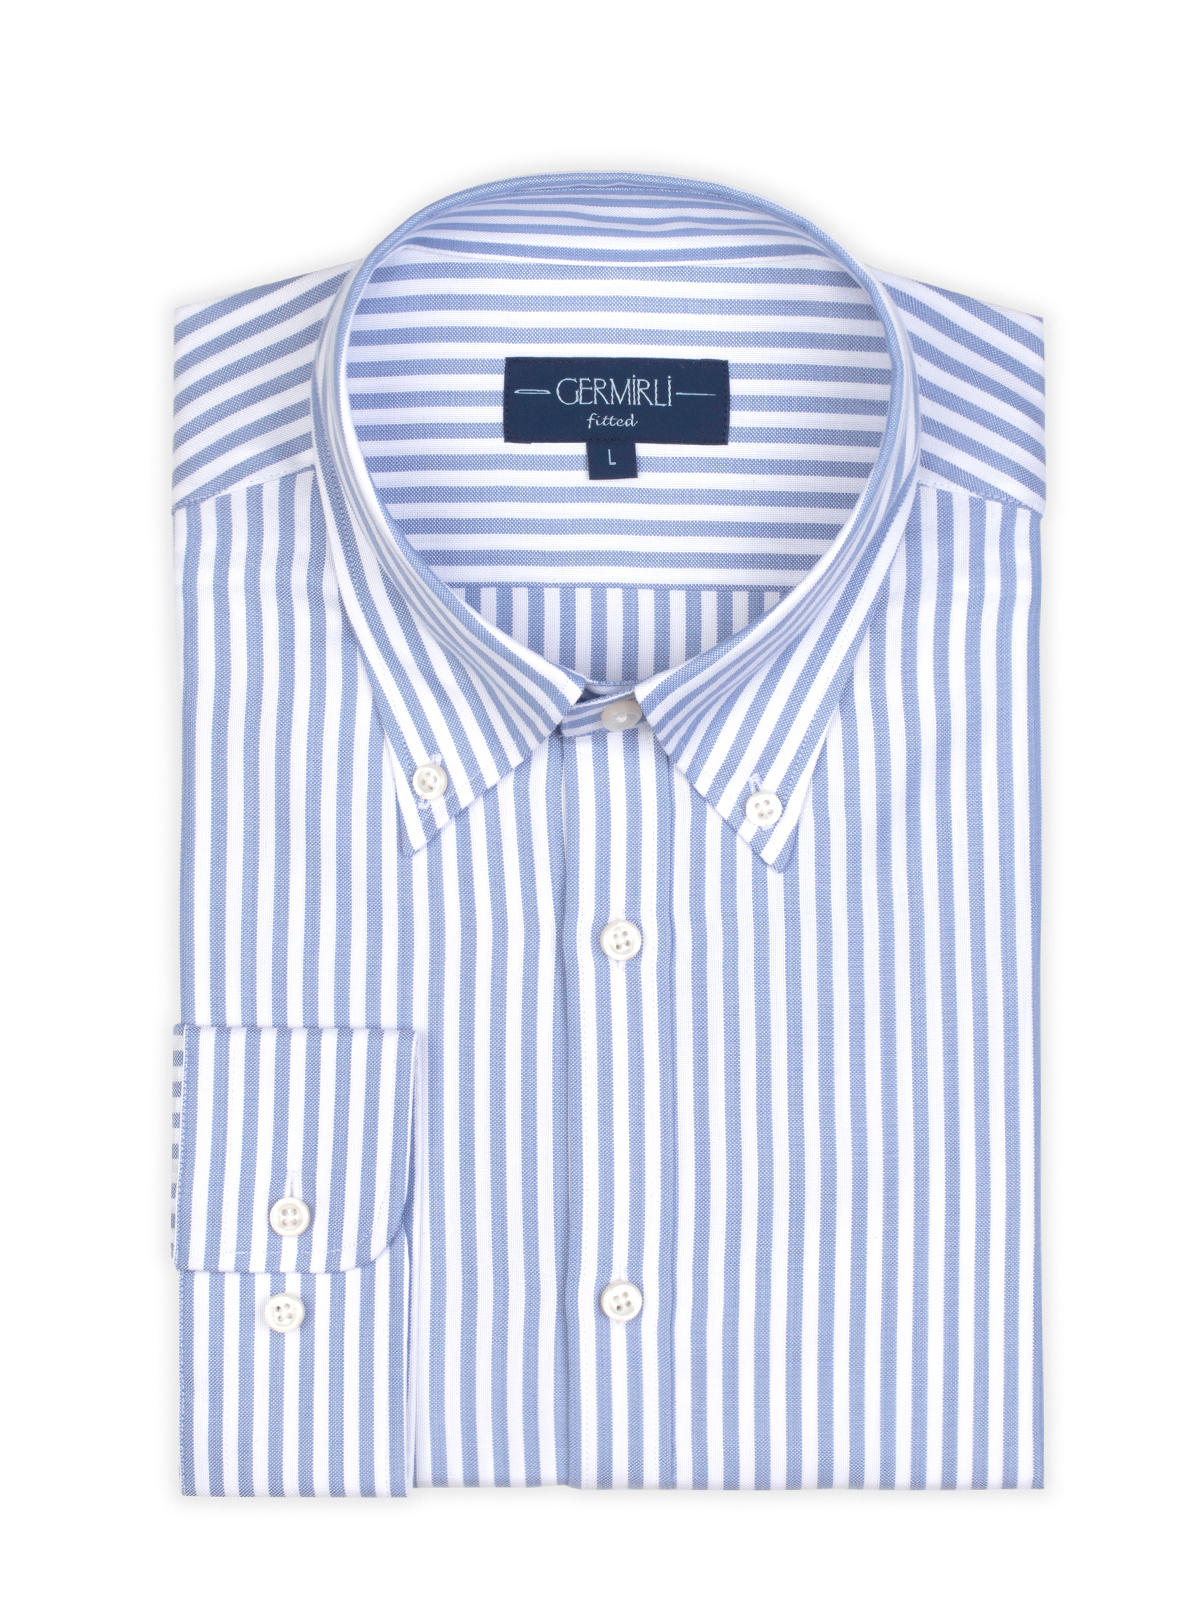 Germirli Blue White Pencil Stripe Button Down Collar Tailor Fit Tencel Shirt